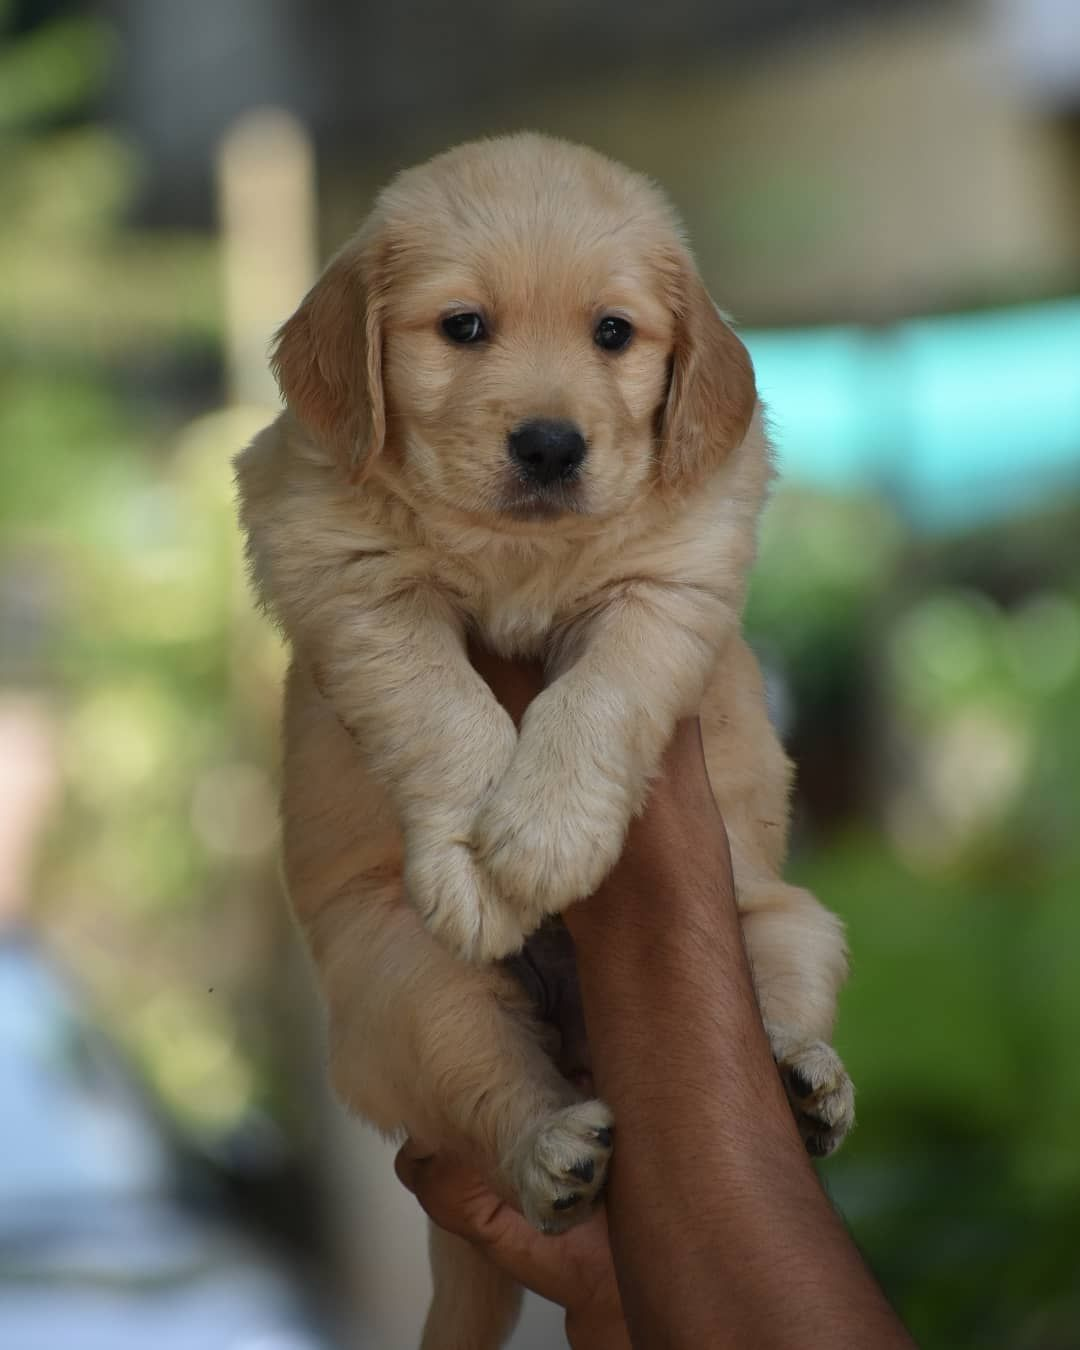 Golden Retriever Puppy Adorable In 2020 Golden Retriever Golden Retriever Puppy Pet Shop